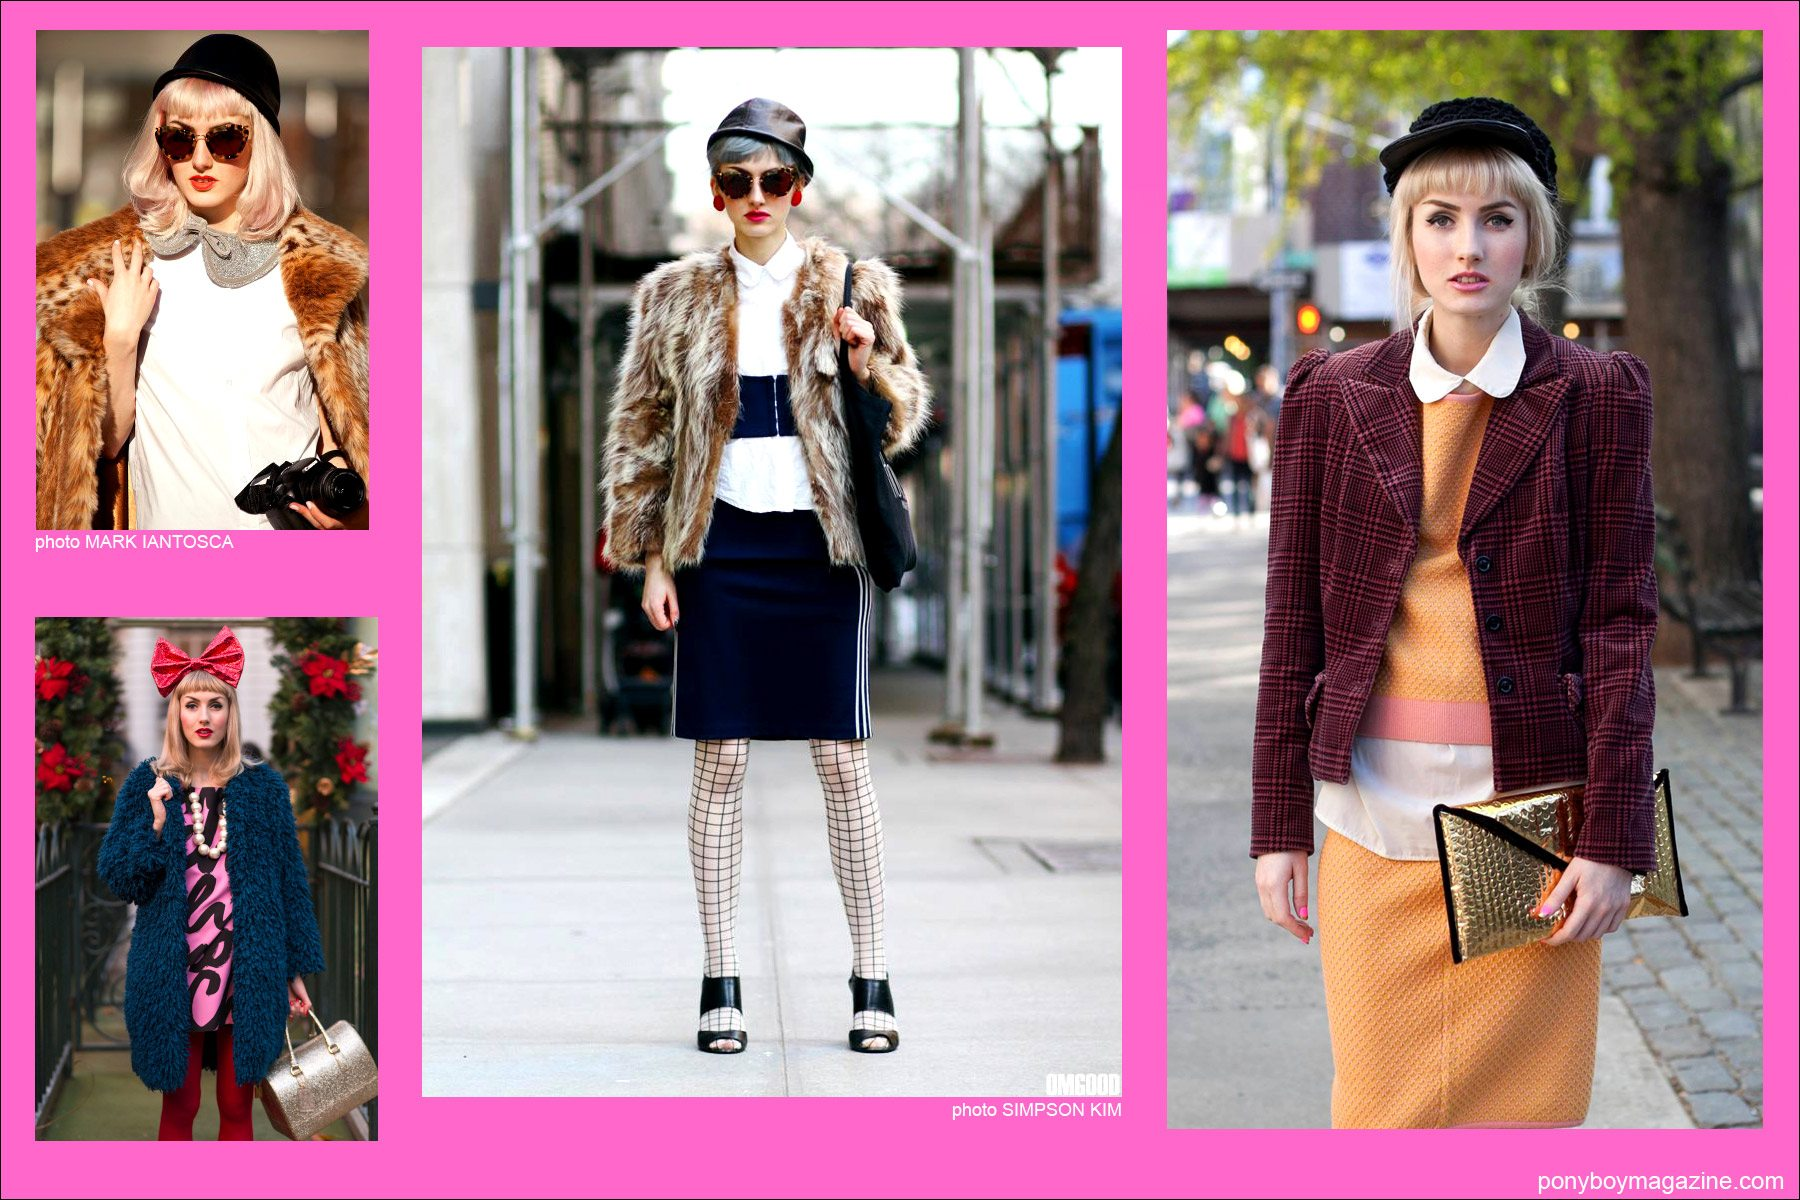 Various street style photos of downtown model Stella Rose Saint Clair for Ponyboy Magazine New York City.